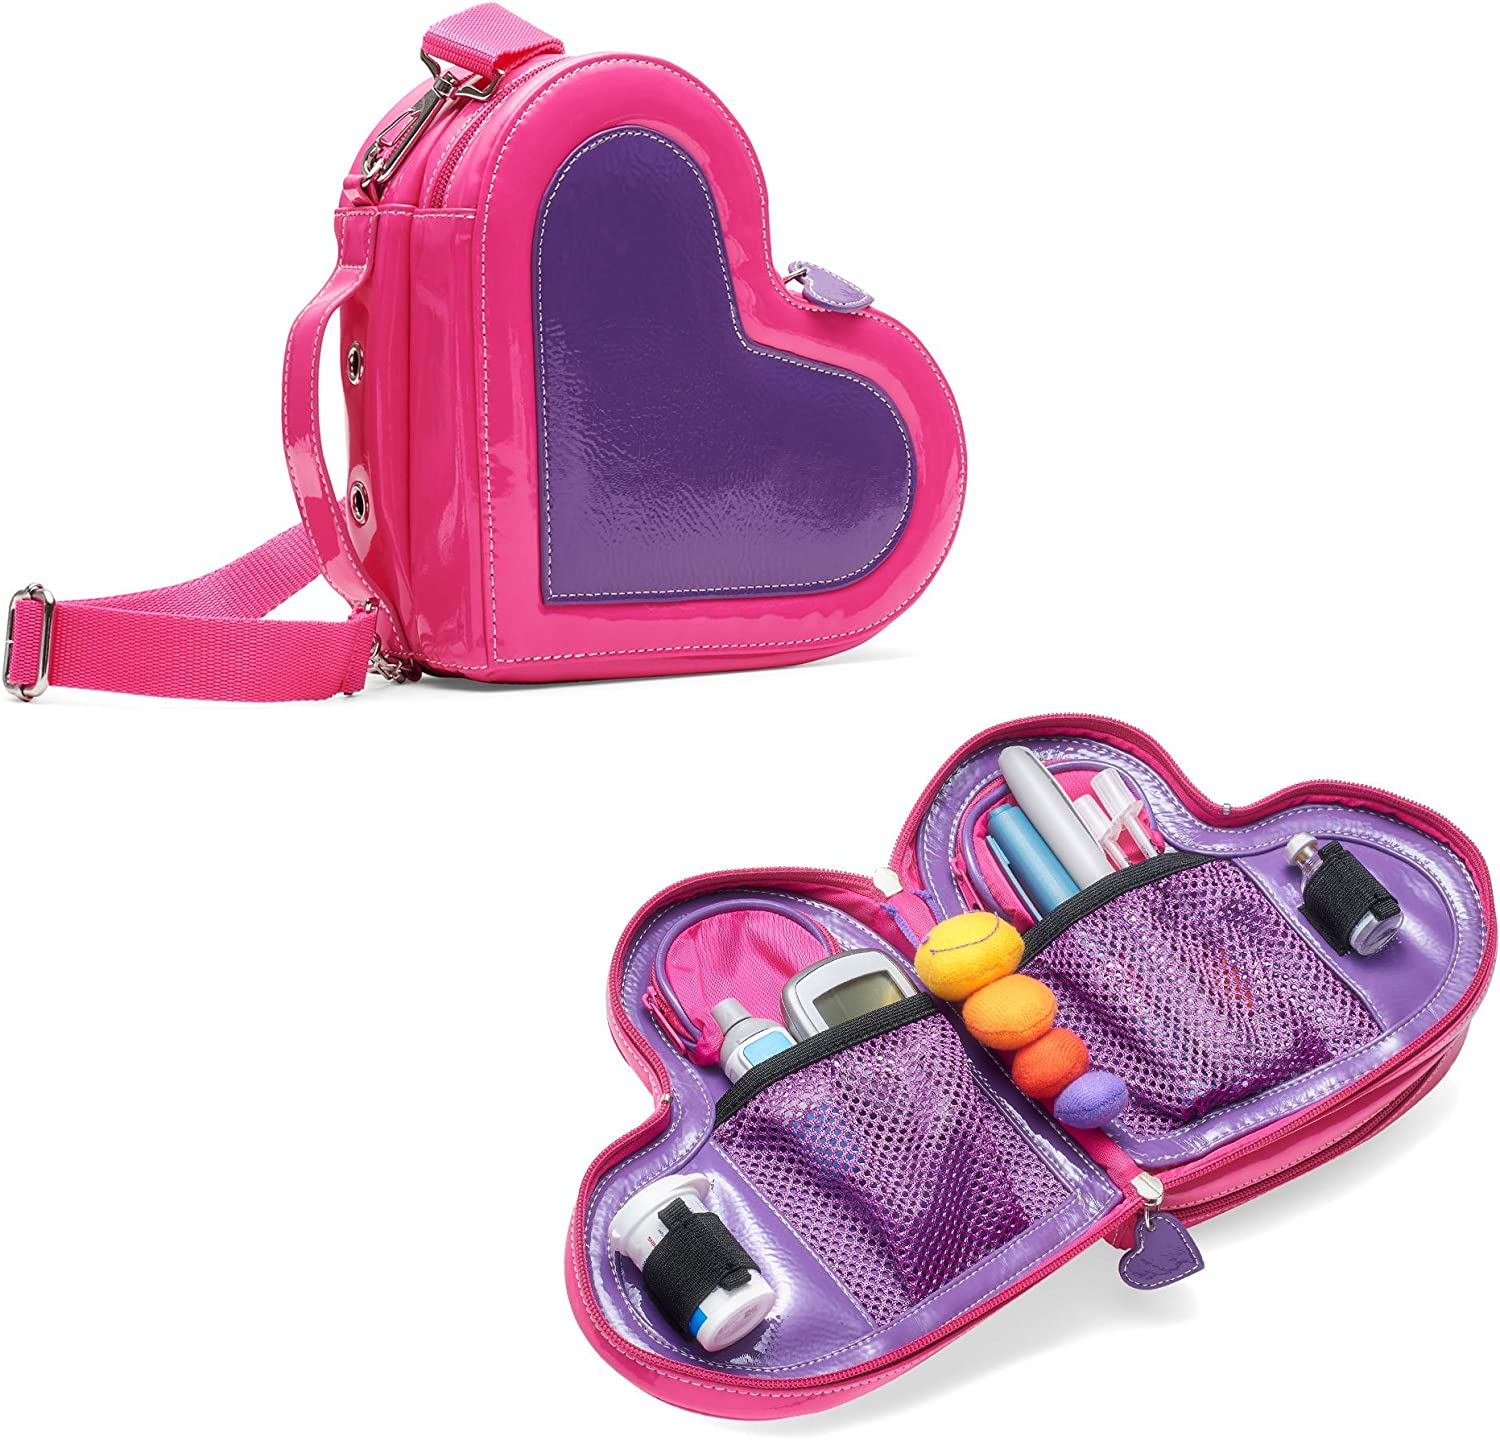 Myabetic Love Bug Diabetes Supply Case Max 83% OFF Glucose Ranking TOP13 To Monitoring for